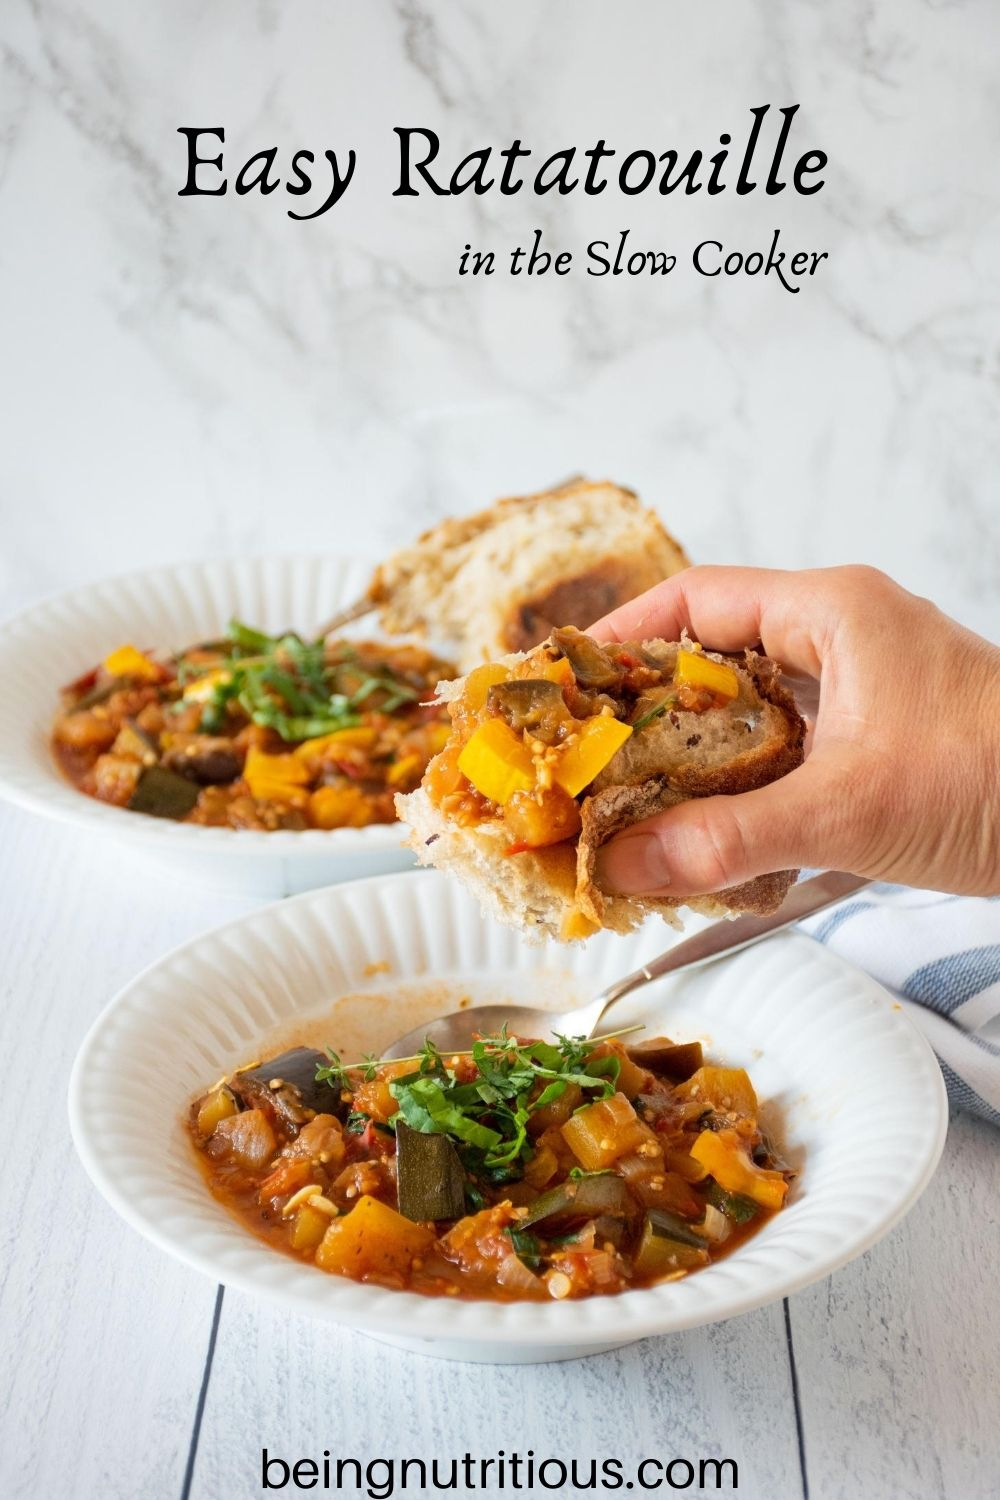 Hand holding a rustic slice of bread, topped with ratatouille, over a bowl of ratatouille. Text overlay: Easy Ratatouille in the Slow Cooker.